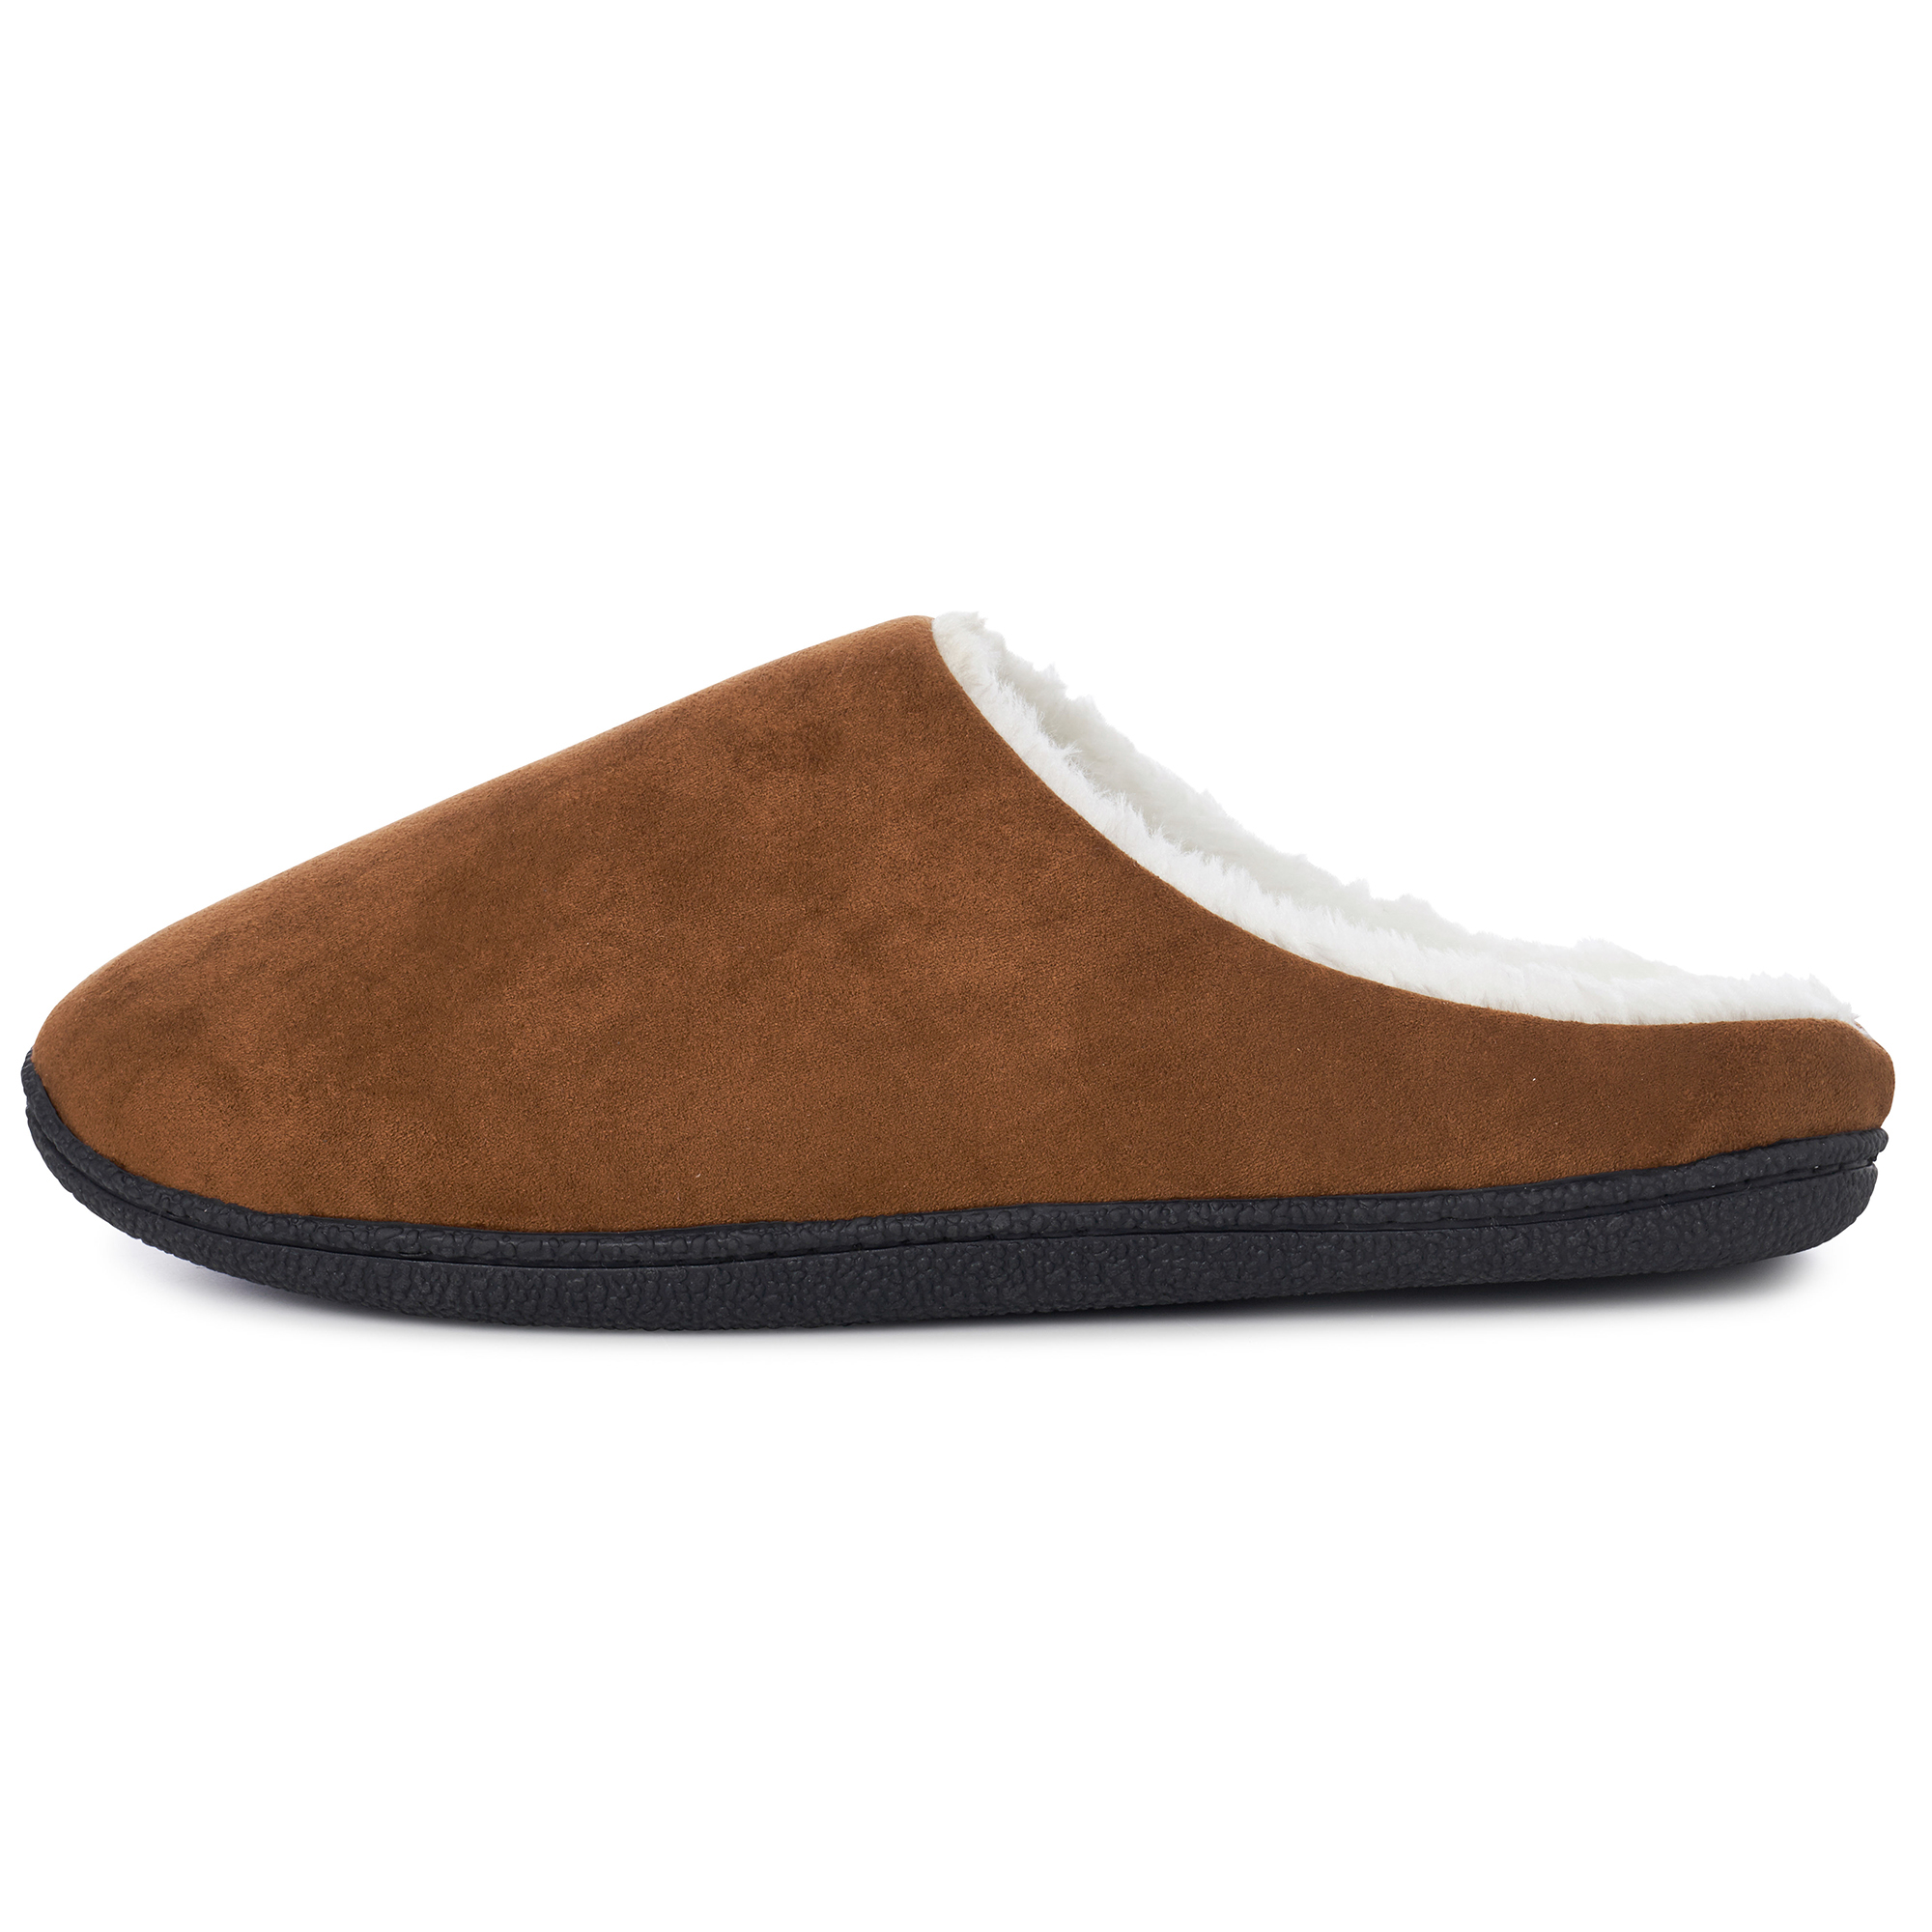 Alpine-Swiss-Mens-Memory-Foam-Clog-Slippers-Indoor-Comfort-Slip-On-House-Shoes thumbnail 19